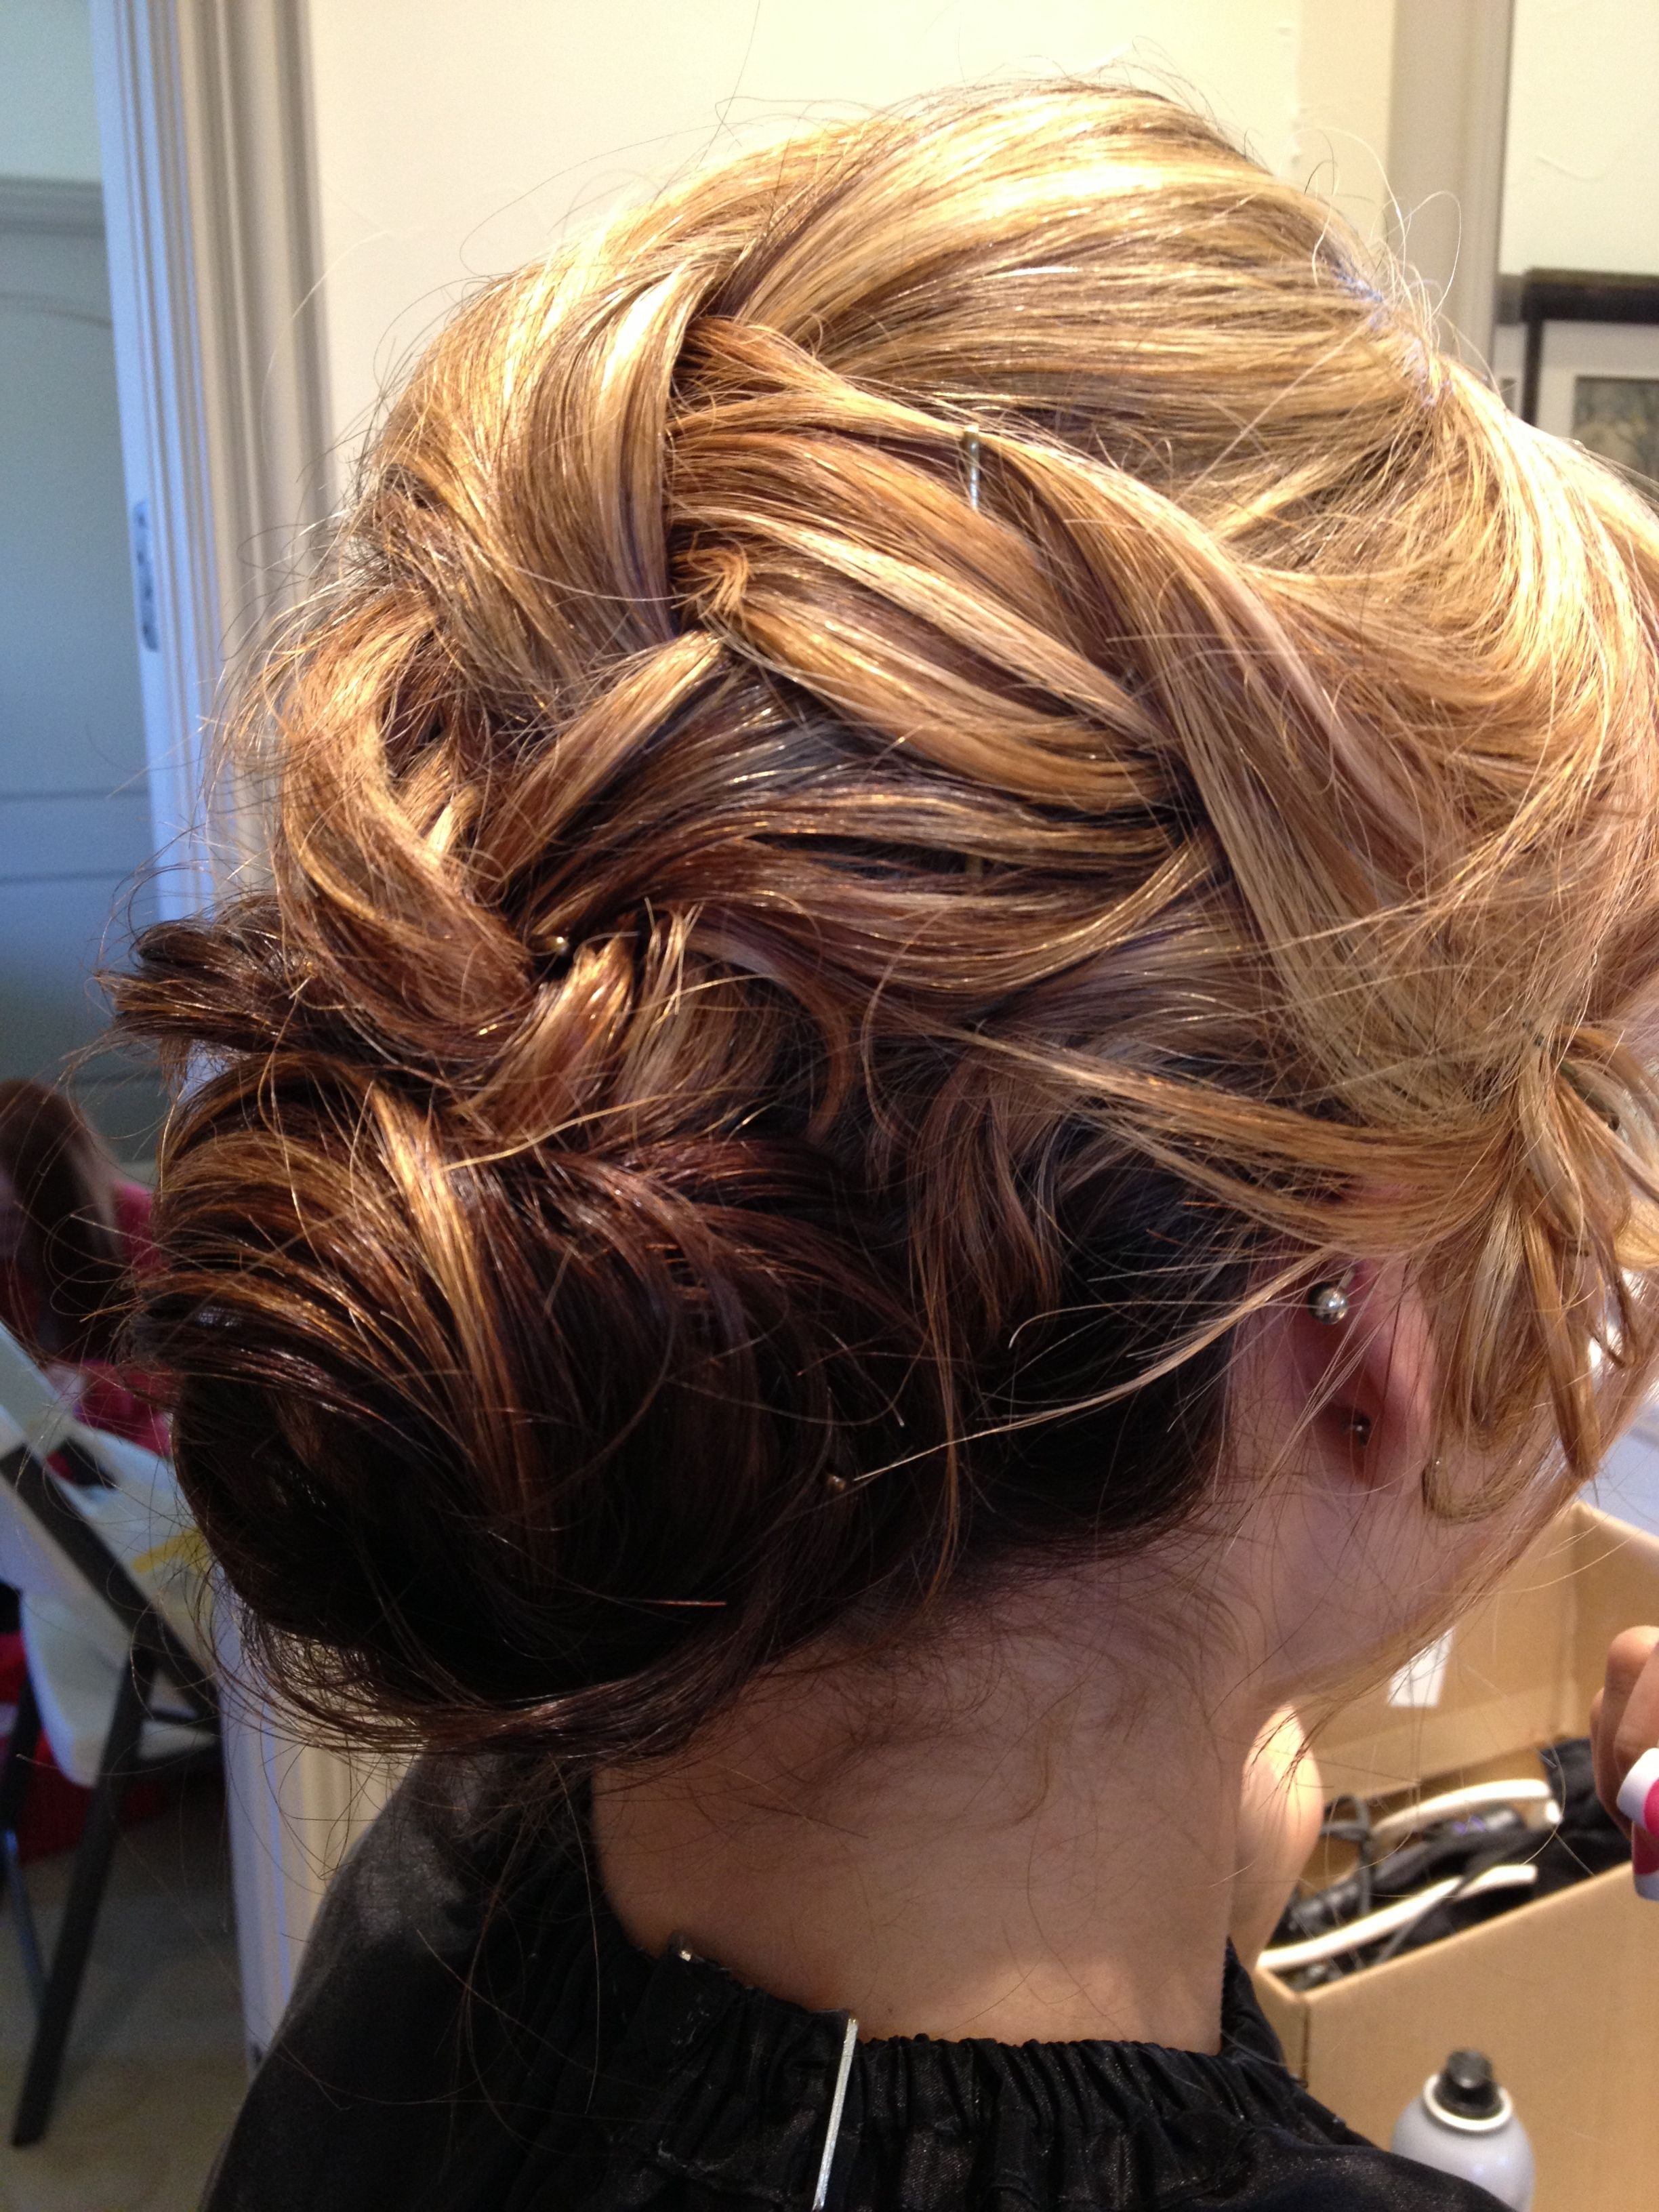 Monica hairstyle loose french braid into low bun chignon formal